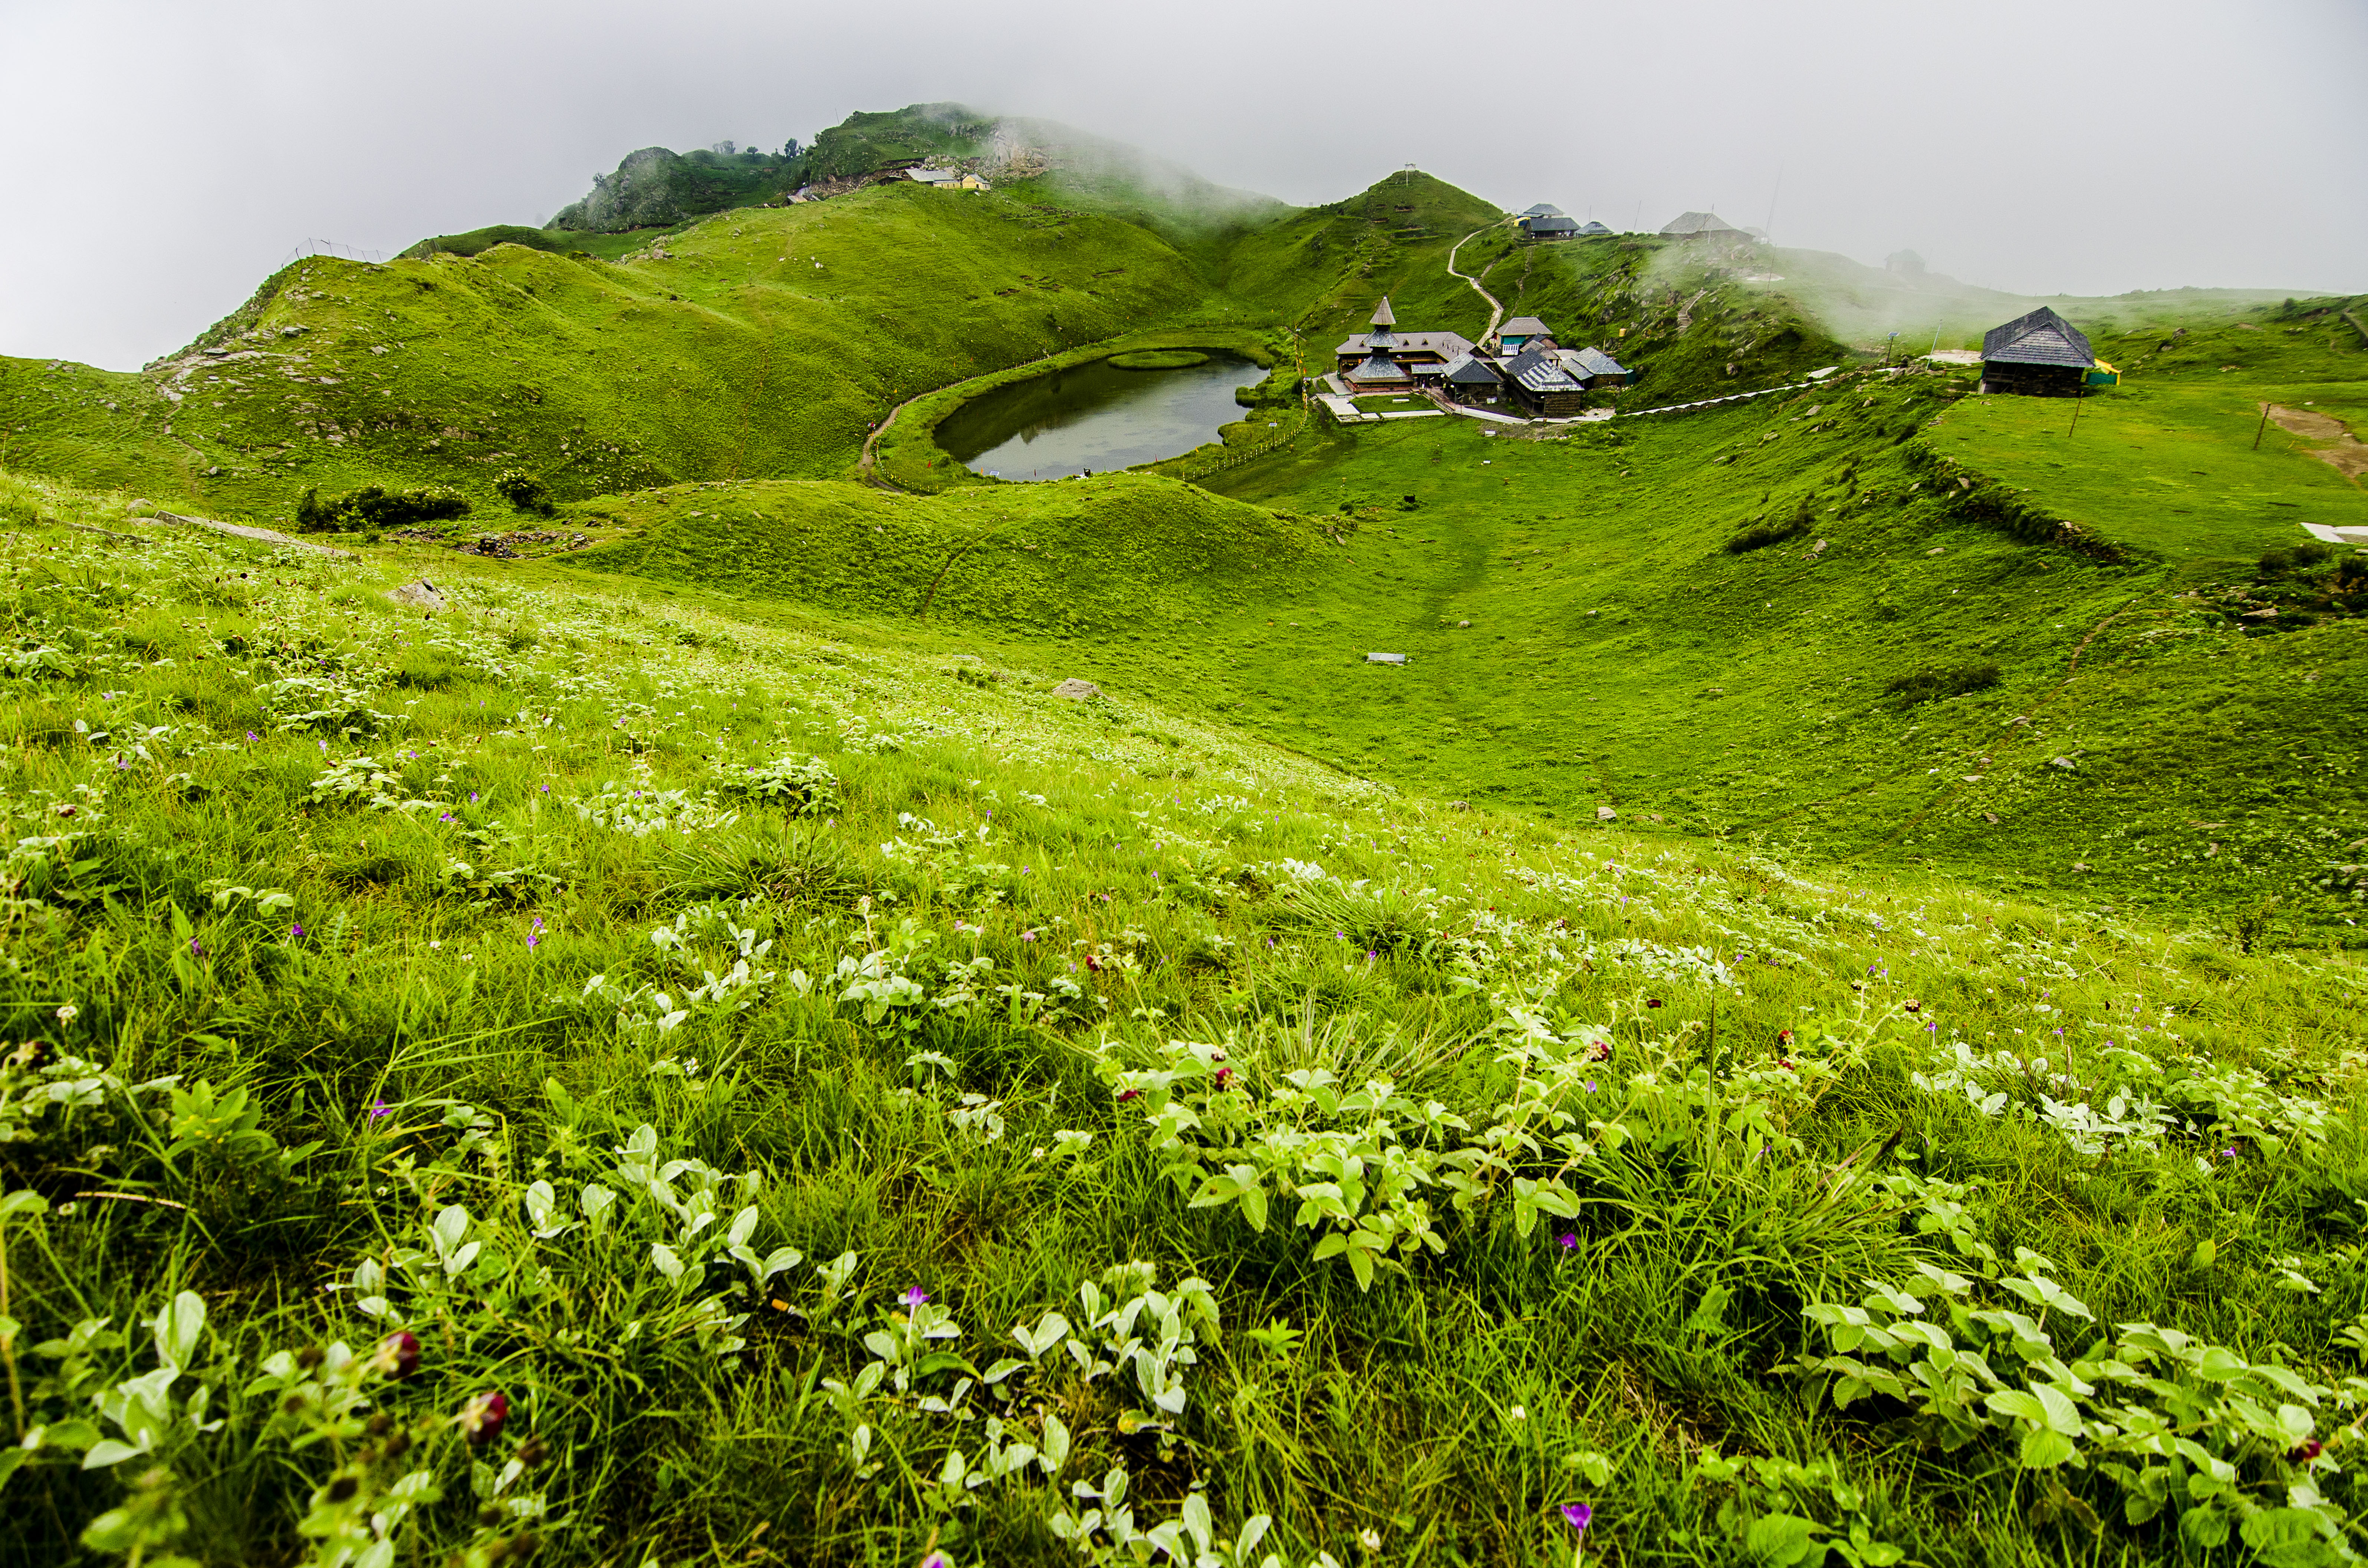 Amazing Prashar Lake and Temple in Monsoons